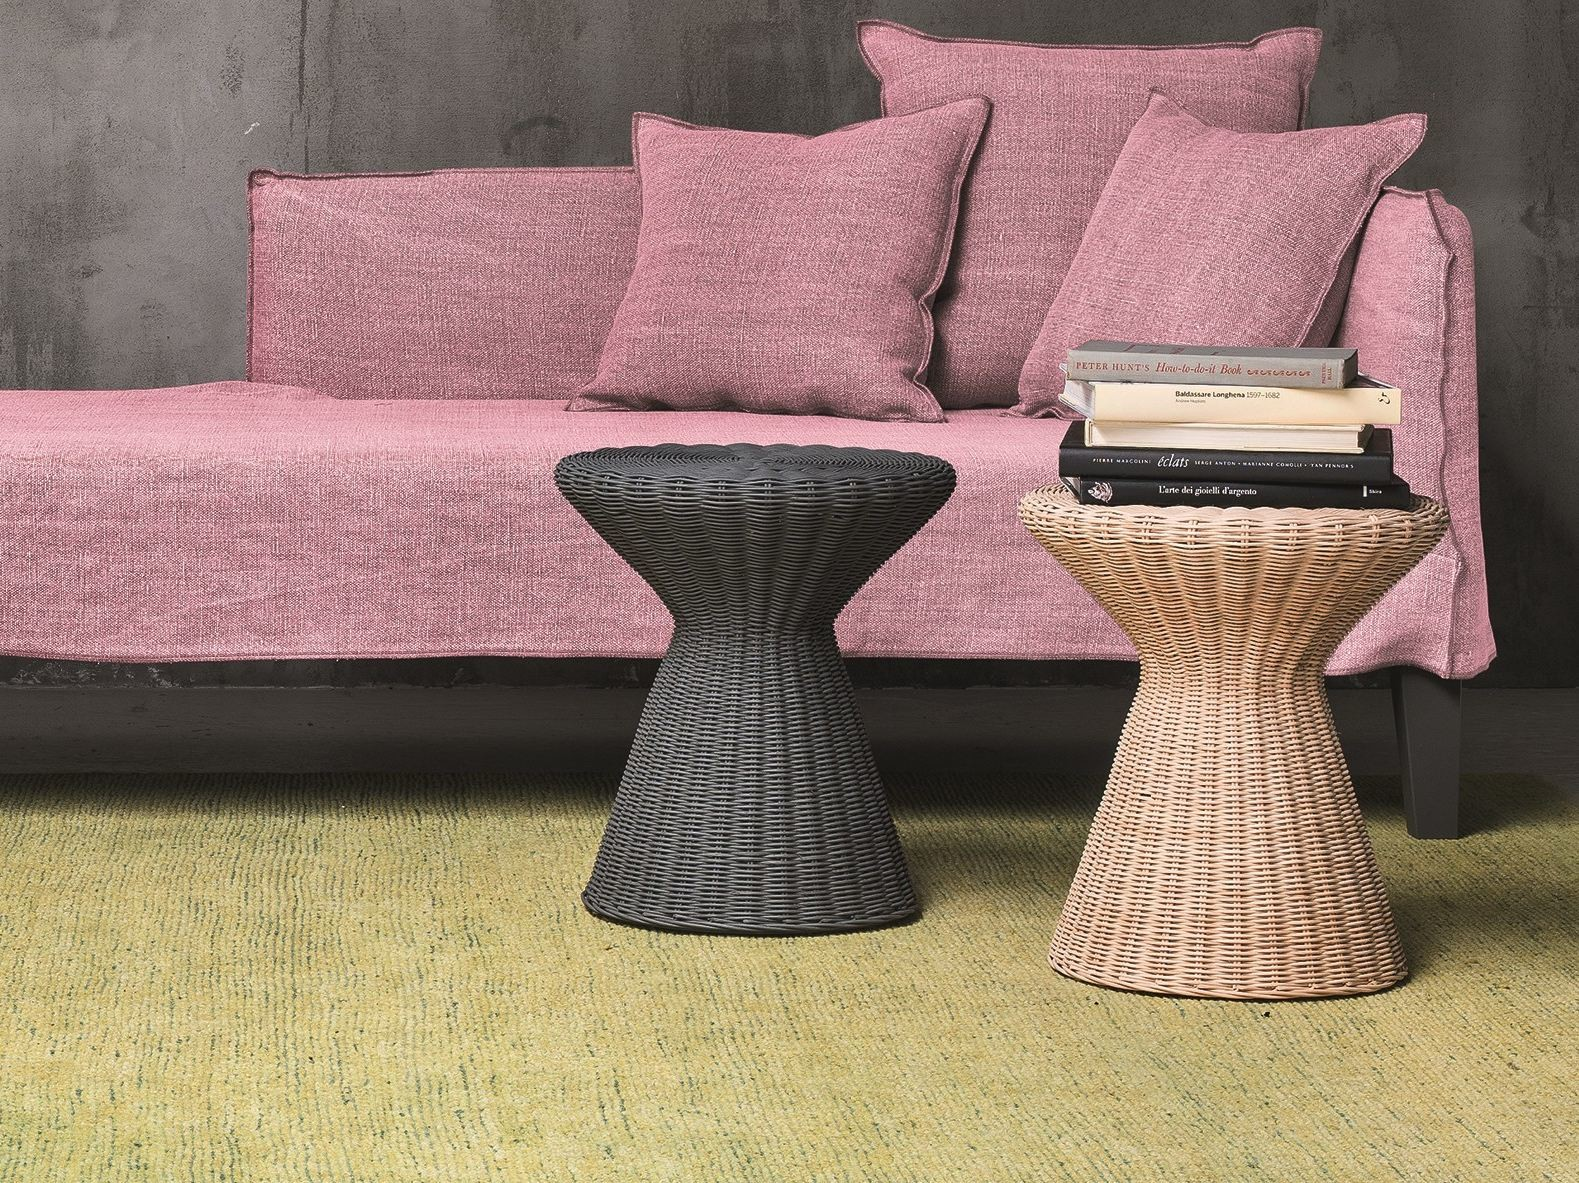 Bolla 12 Coffee Table - Bolla 12 is a coffee table in natural melange rattan core. It is also available in matt white, grey, air force blue, black lacquered. | Matter of Stuff